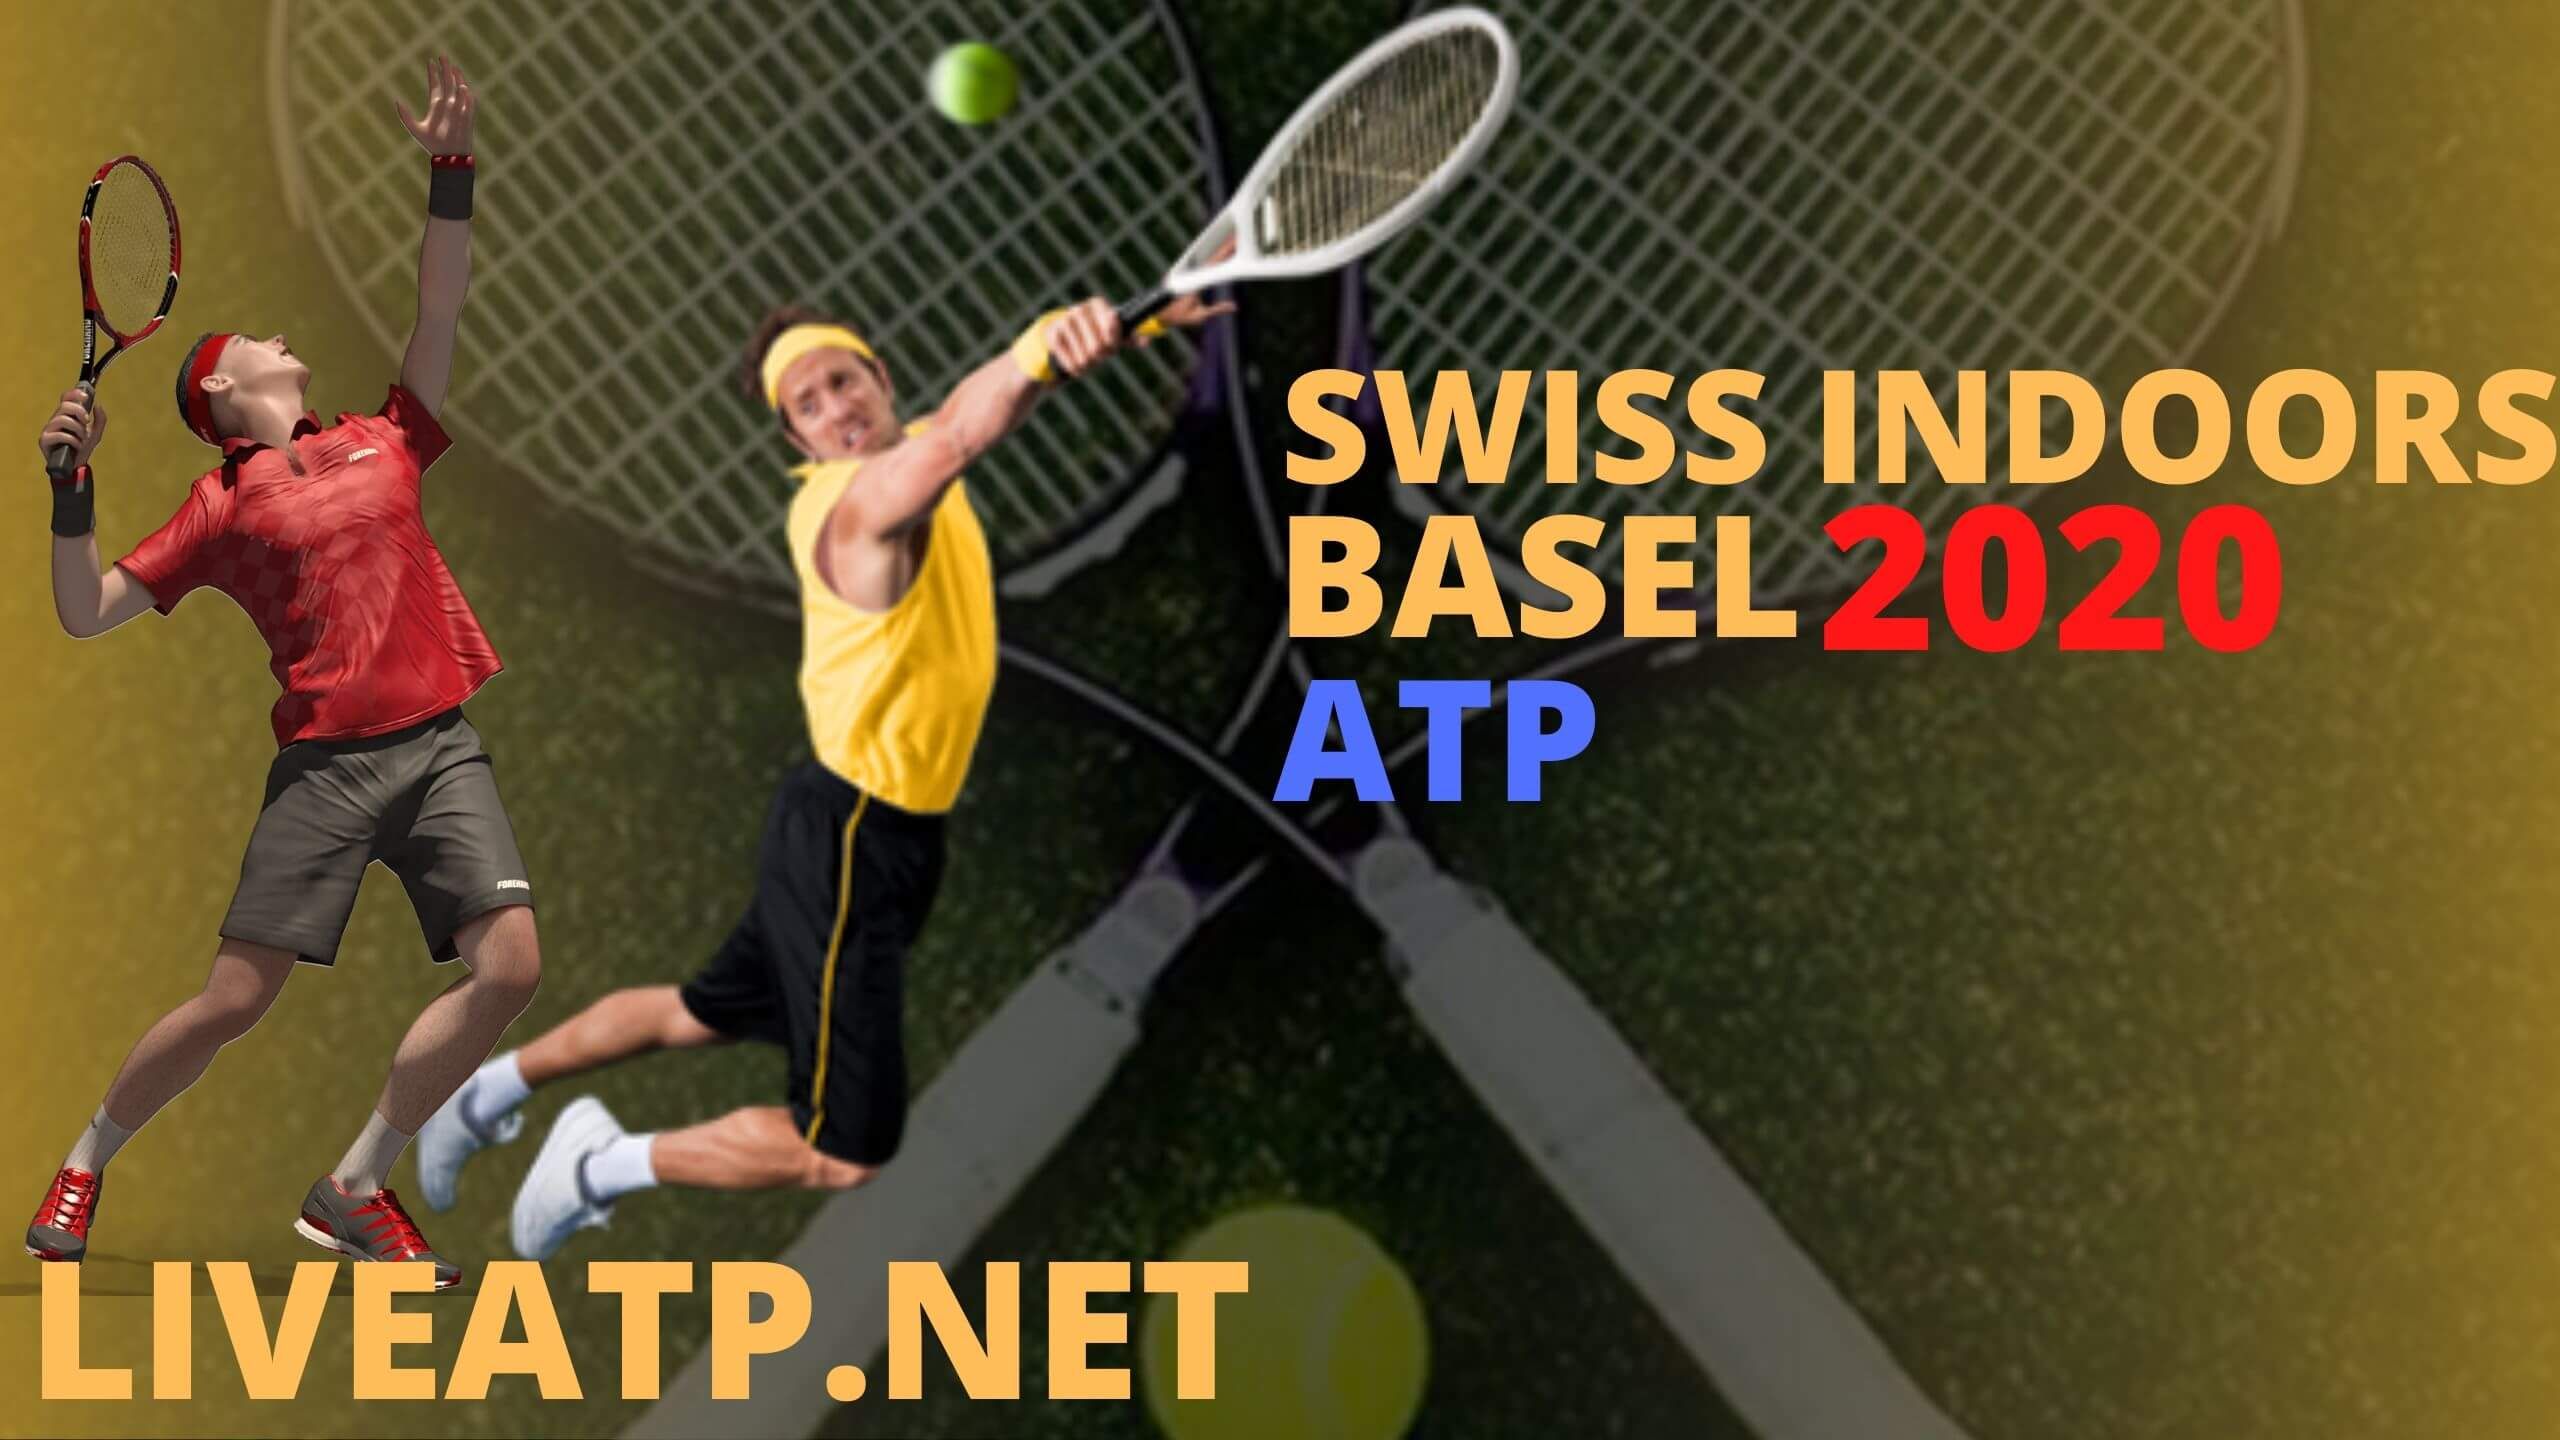 Swiss Indoors Basel Live Stream 2020 | Day 4